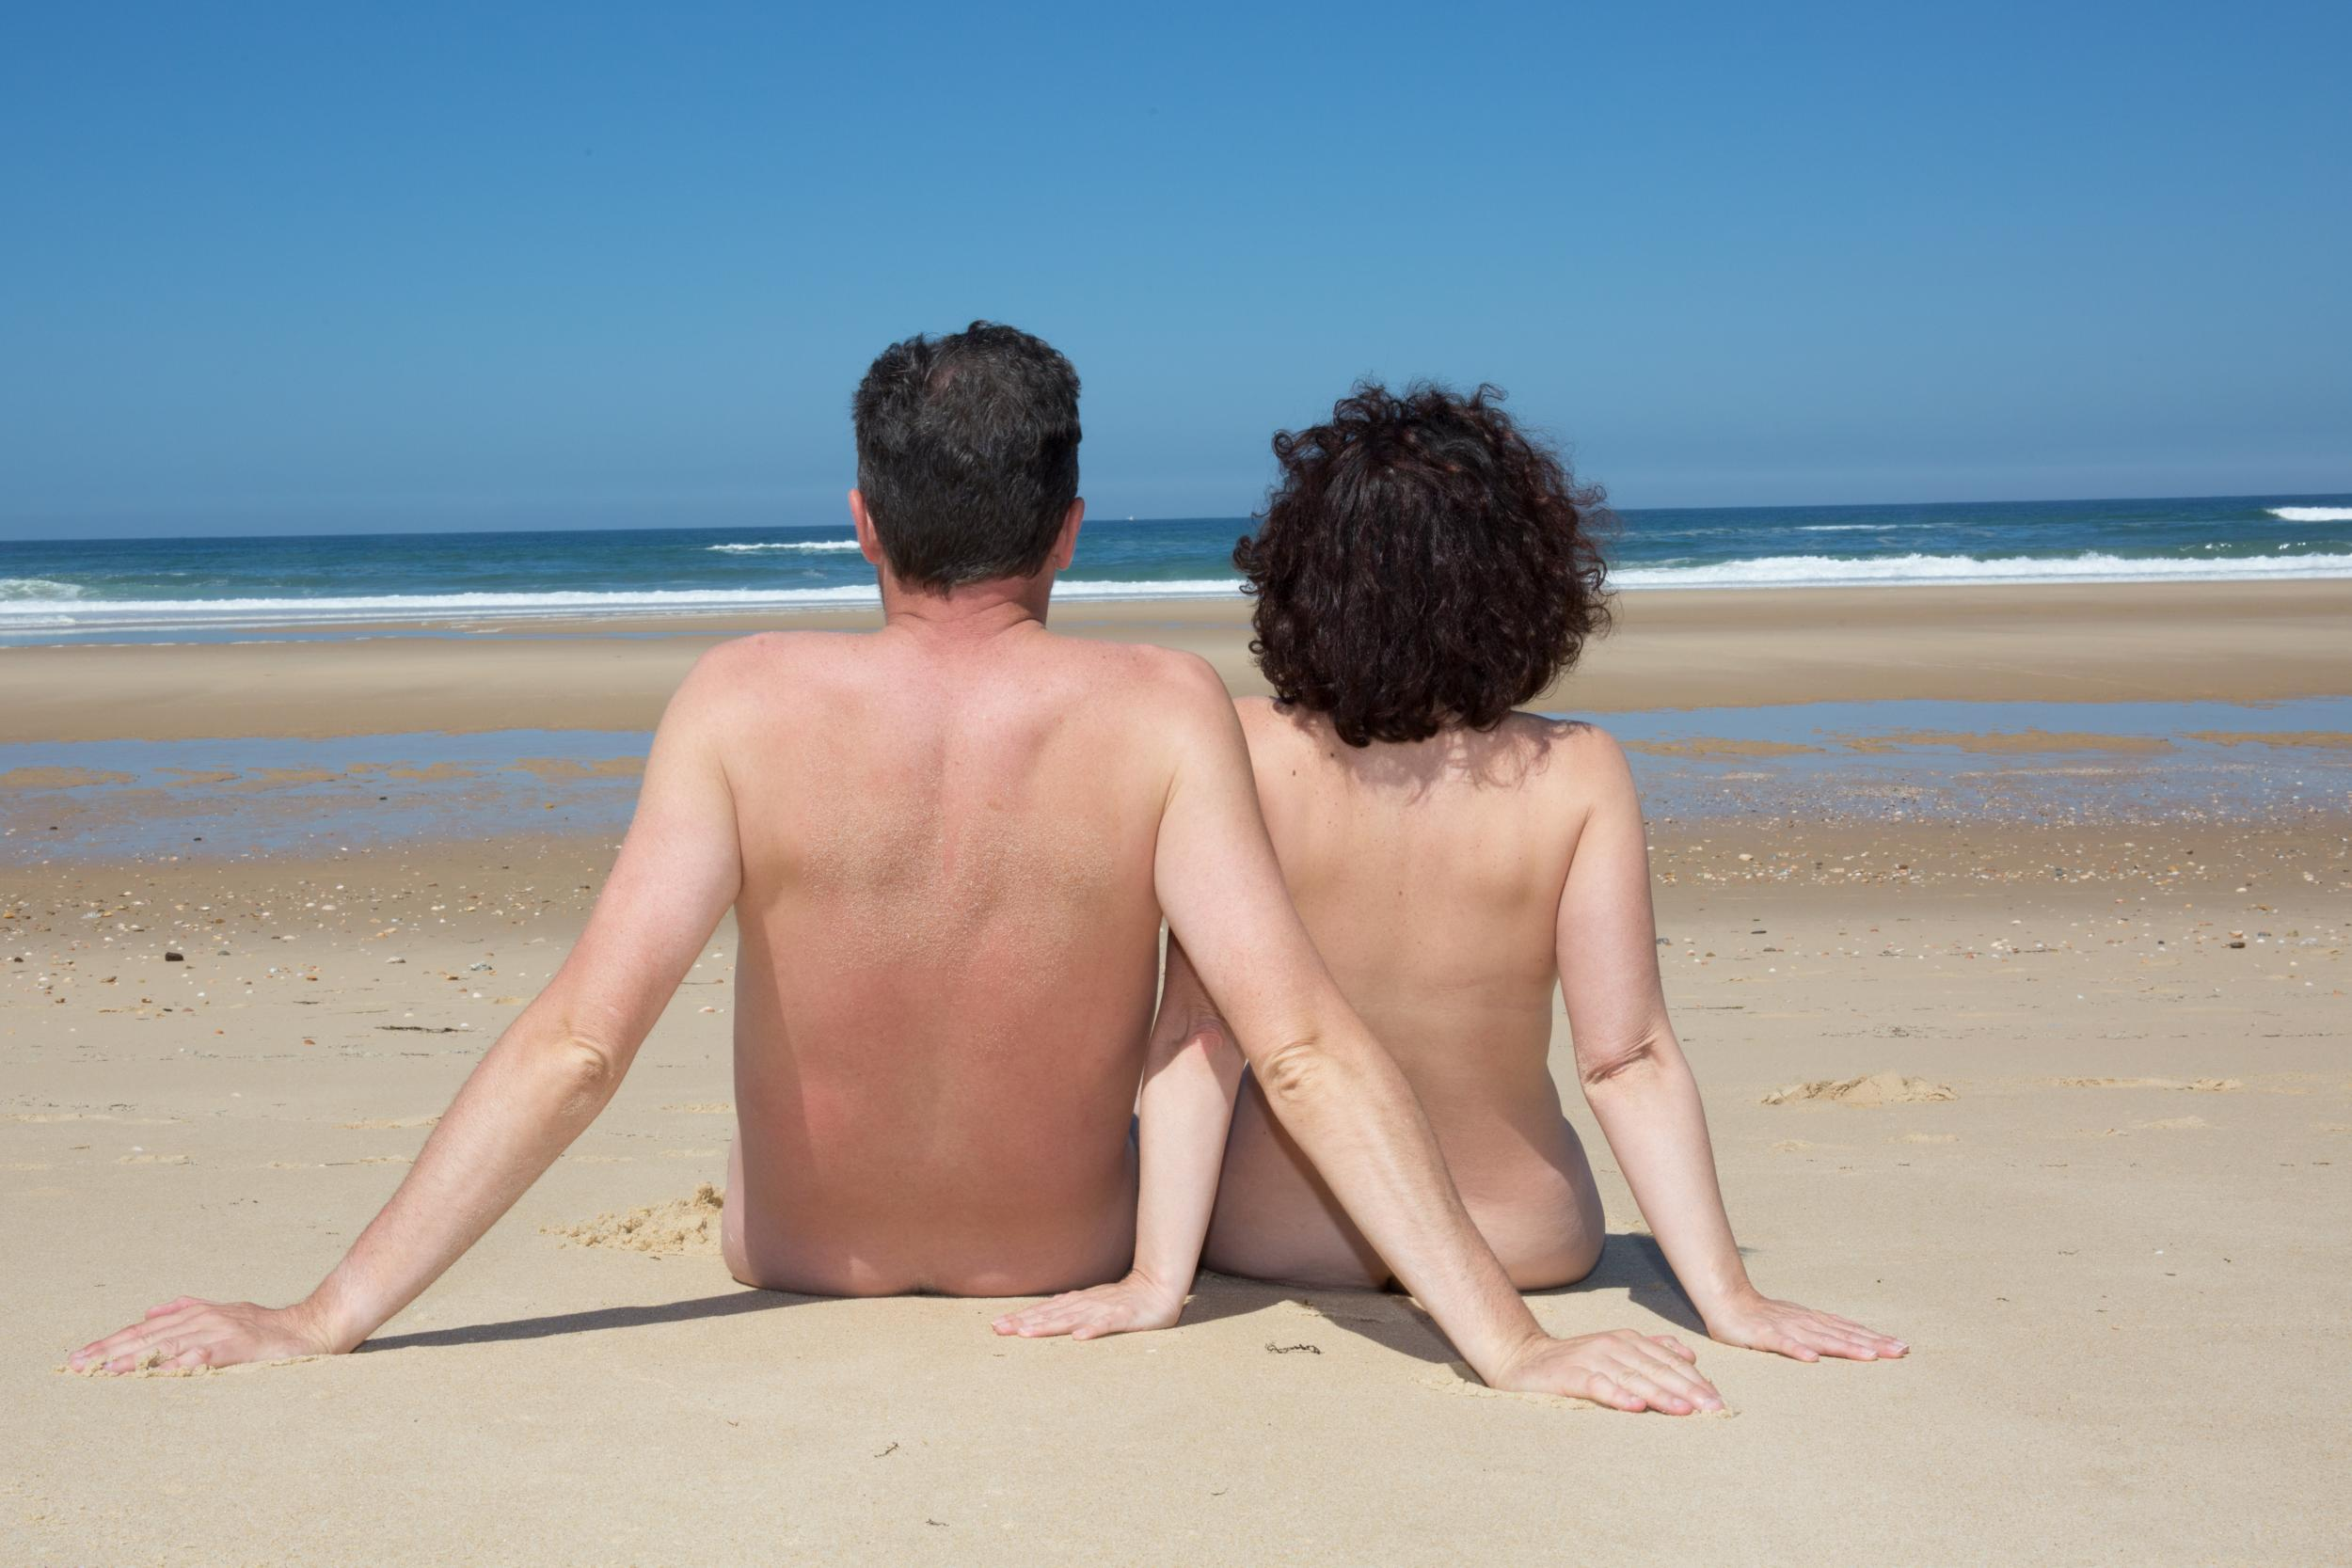 Nude beaches in egypt